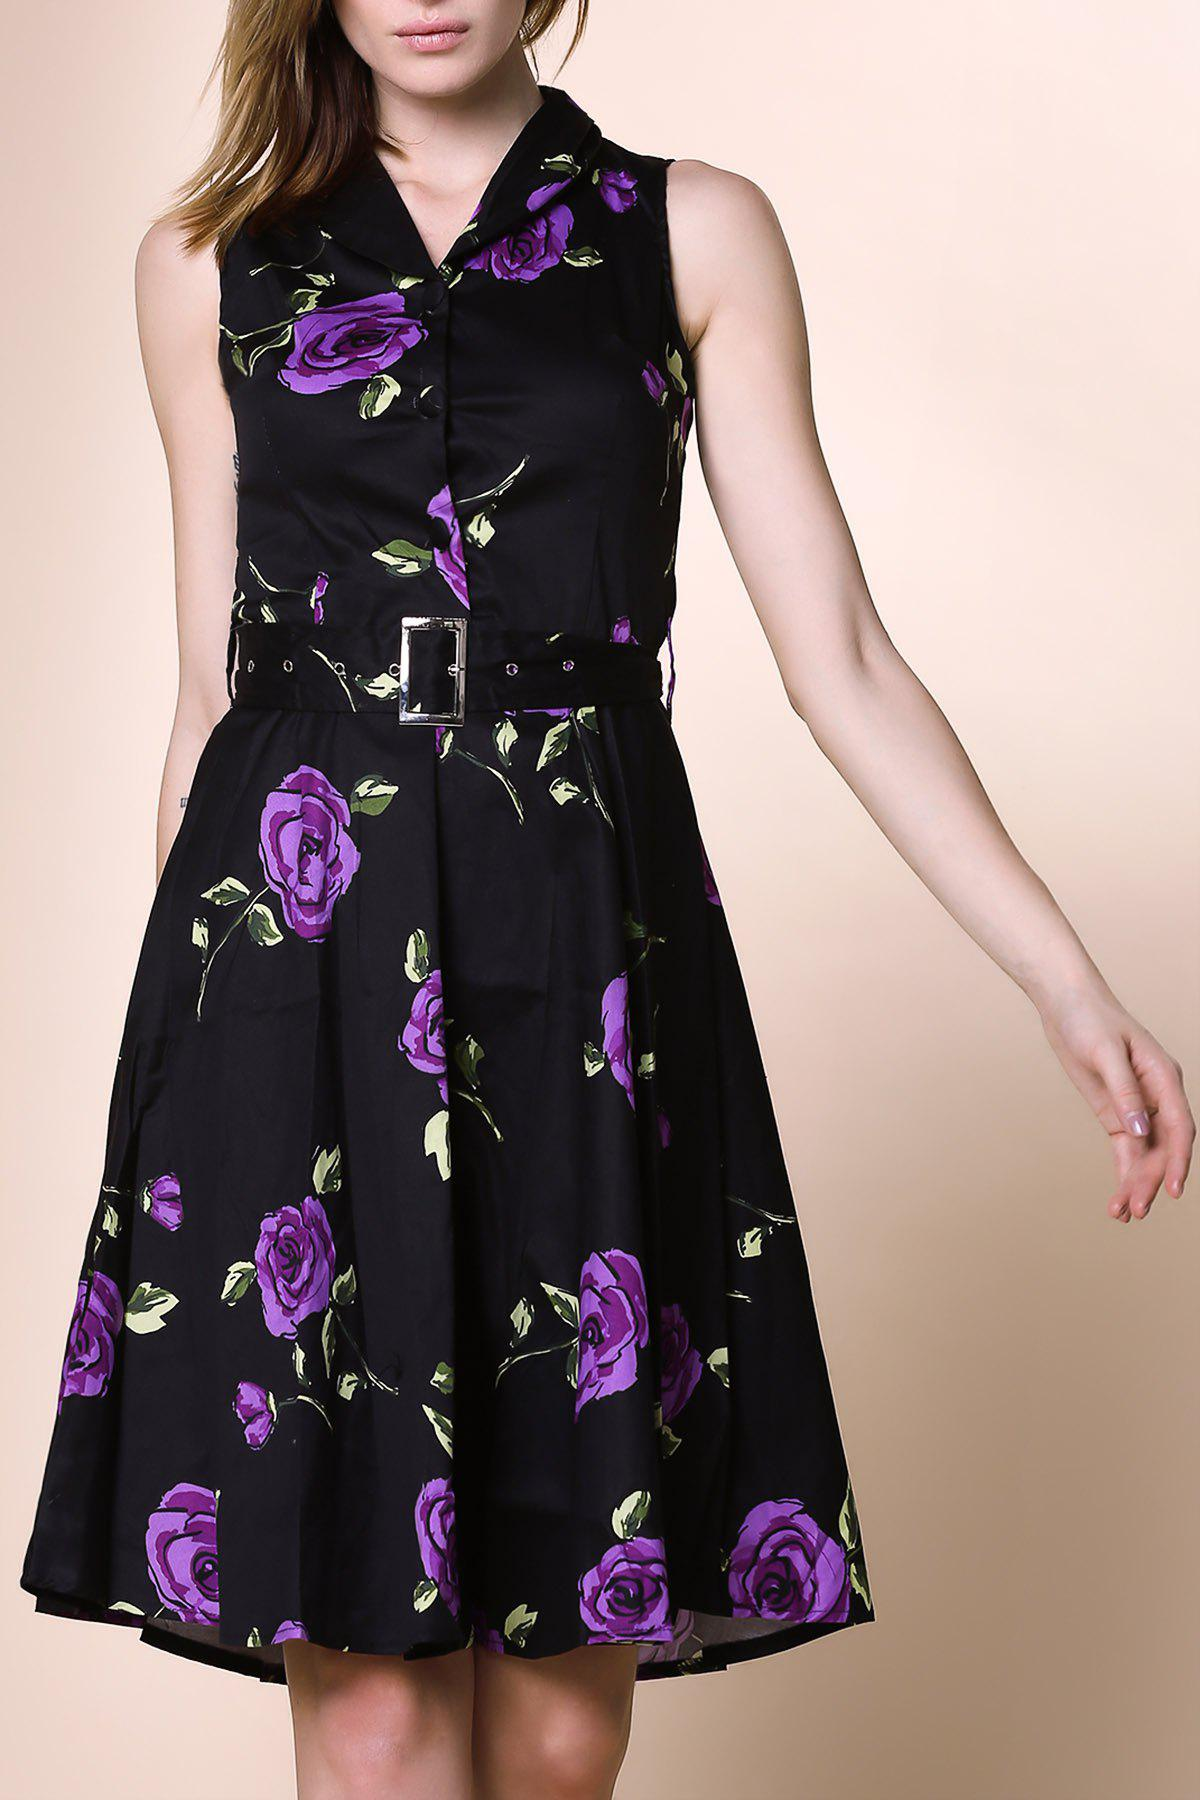 Retro Style Sleeveless Turn-Down Collar Flower Pattern Women's Dress - PURPLE S